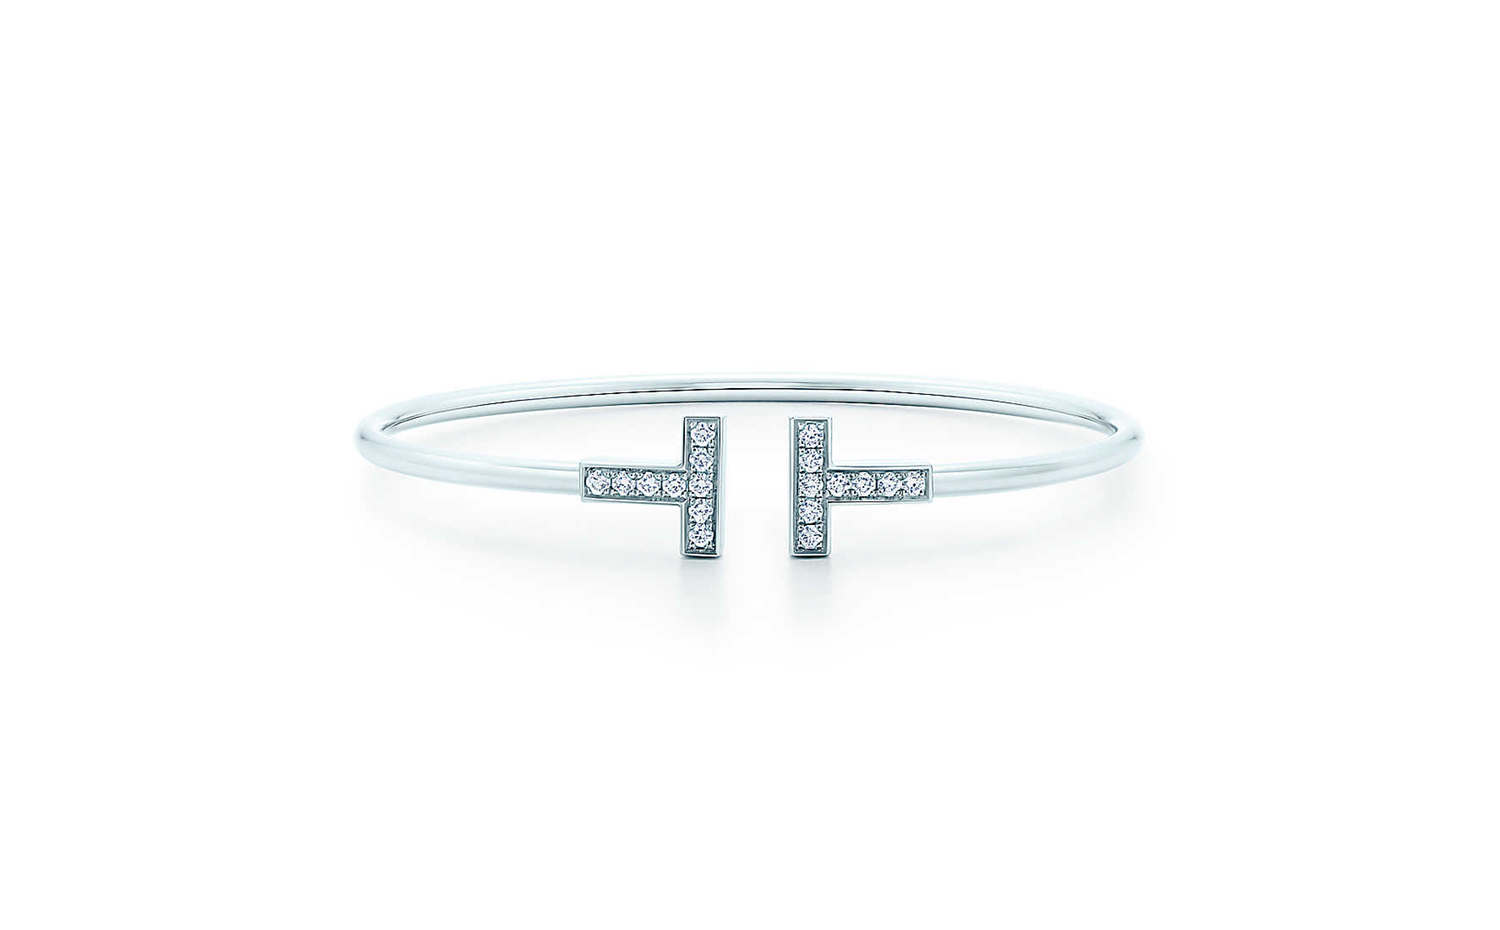 Tiffany T Wire Bracelet in White Gold